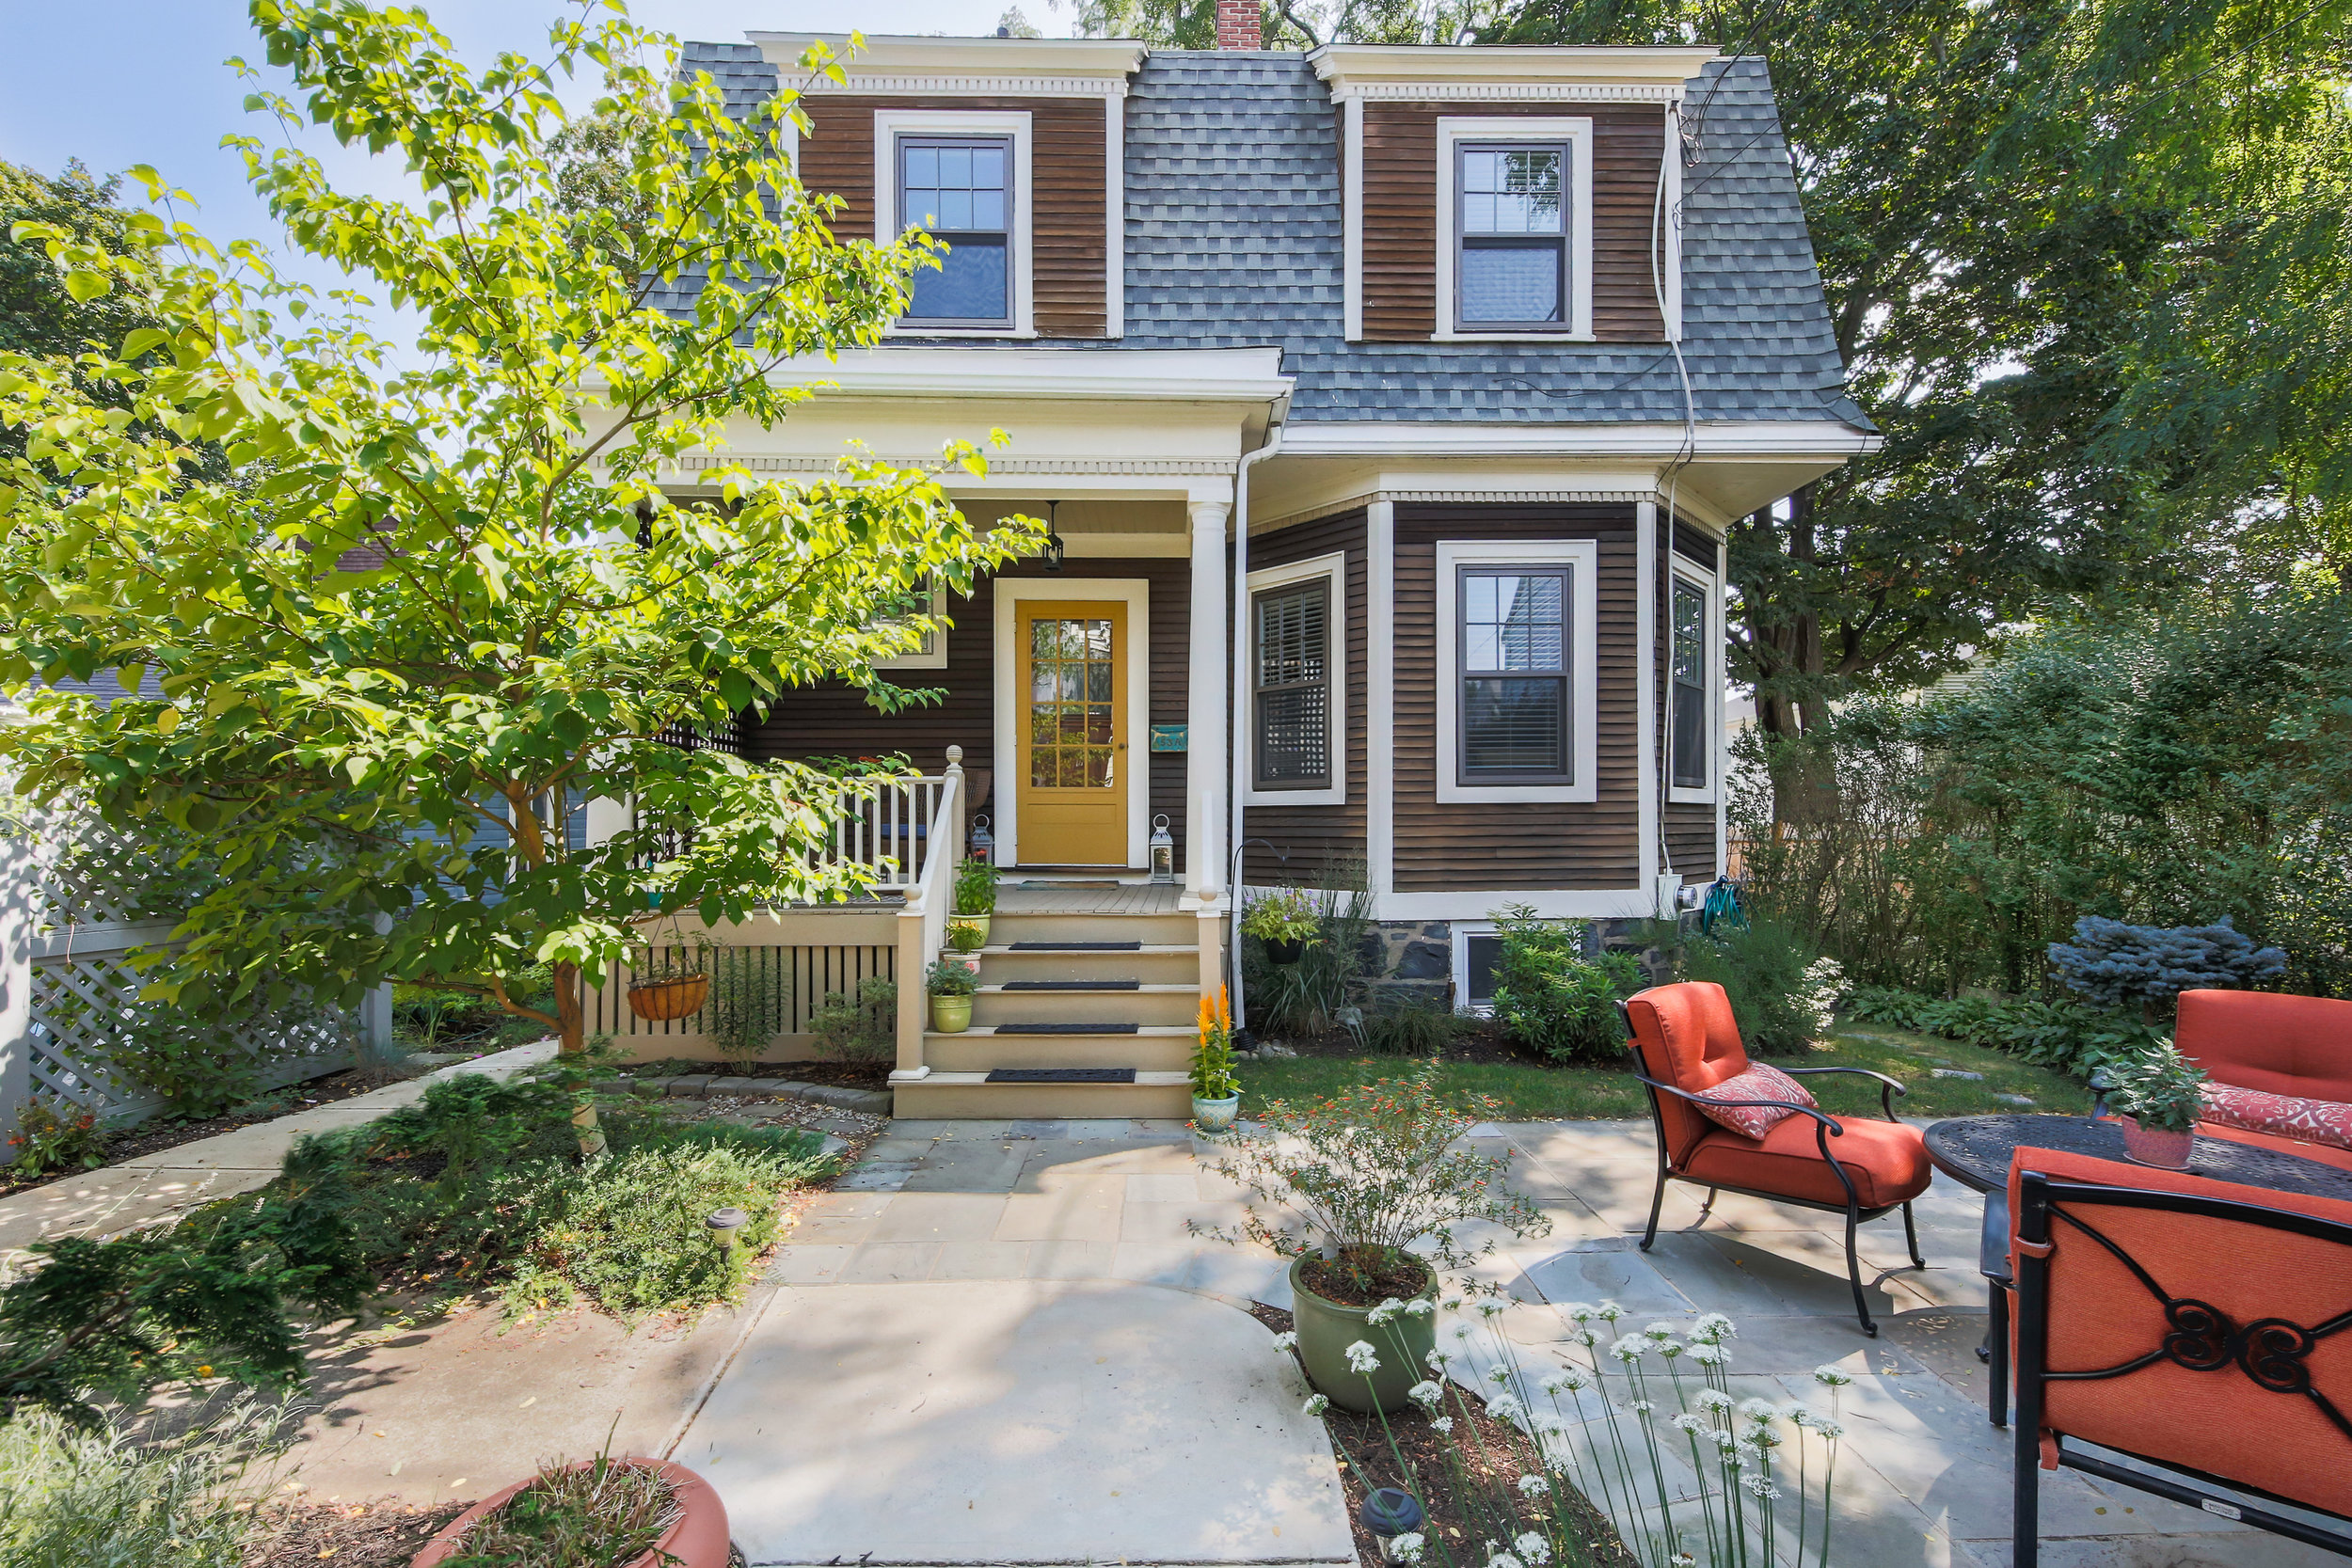 53A Dartmouth St - 3 Beds | 2 bath | 1525 SqFtSold for $835,000